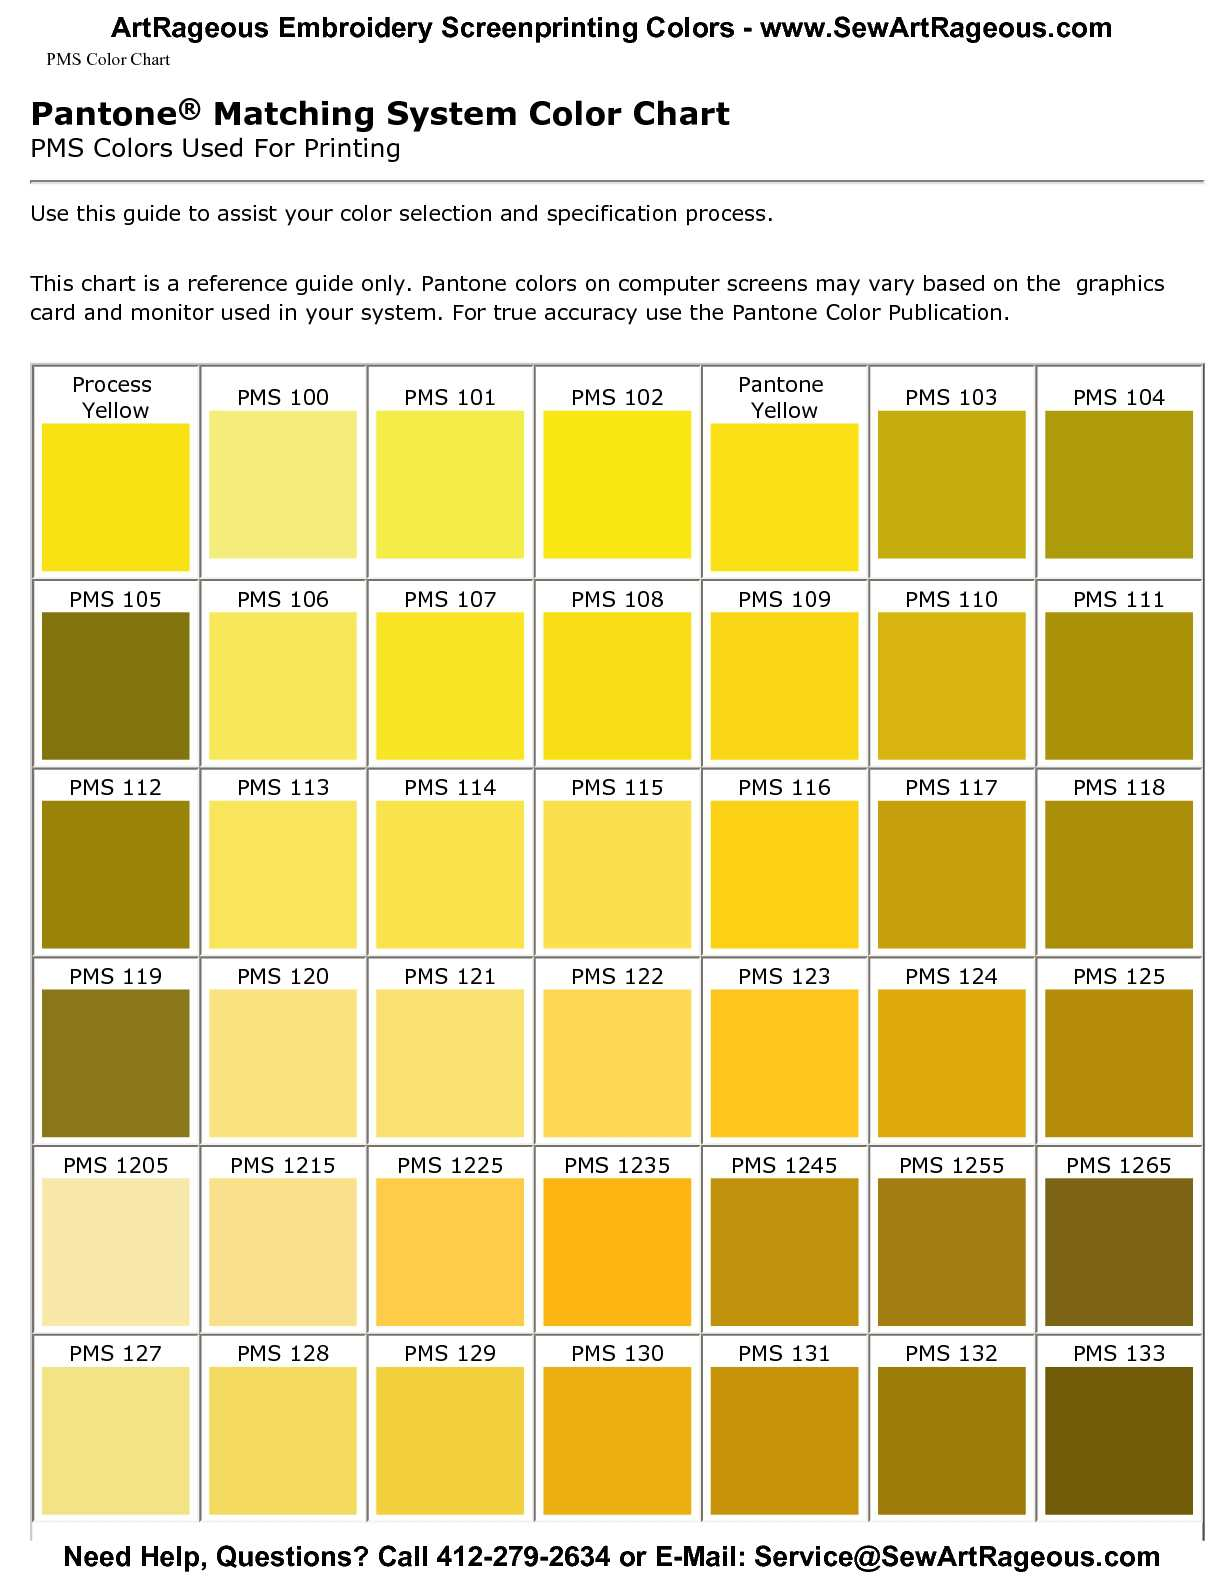 Calaméo - Custom Screenprinting PMS Color Charts